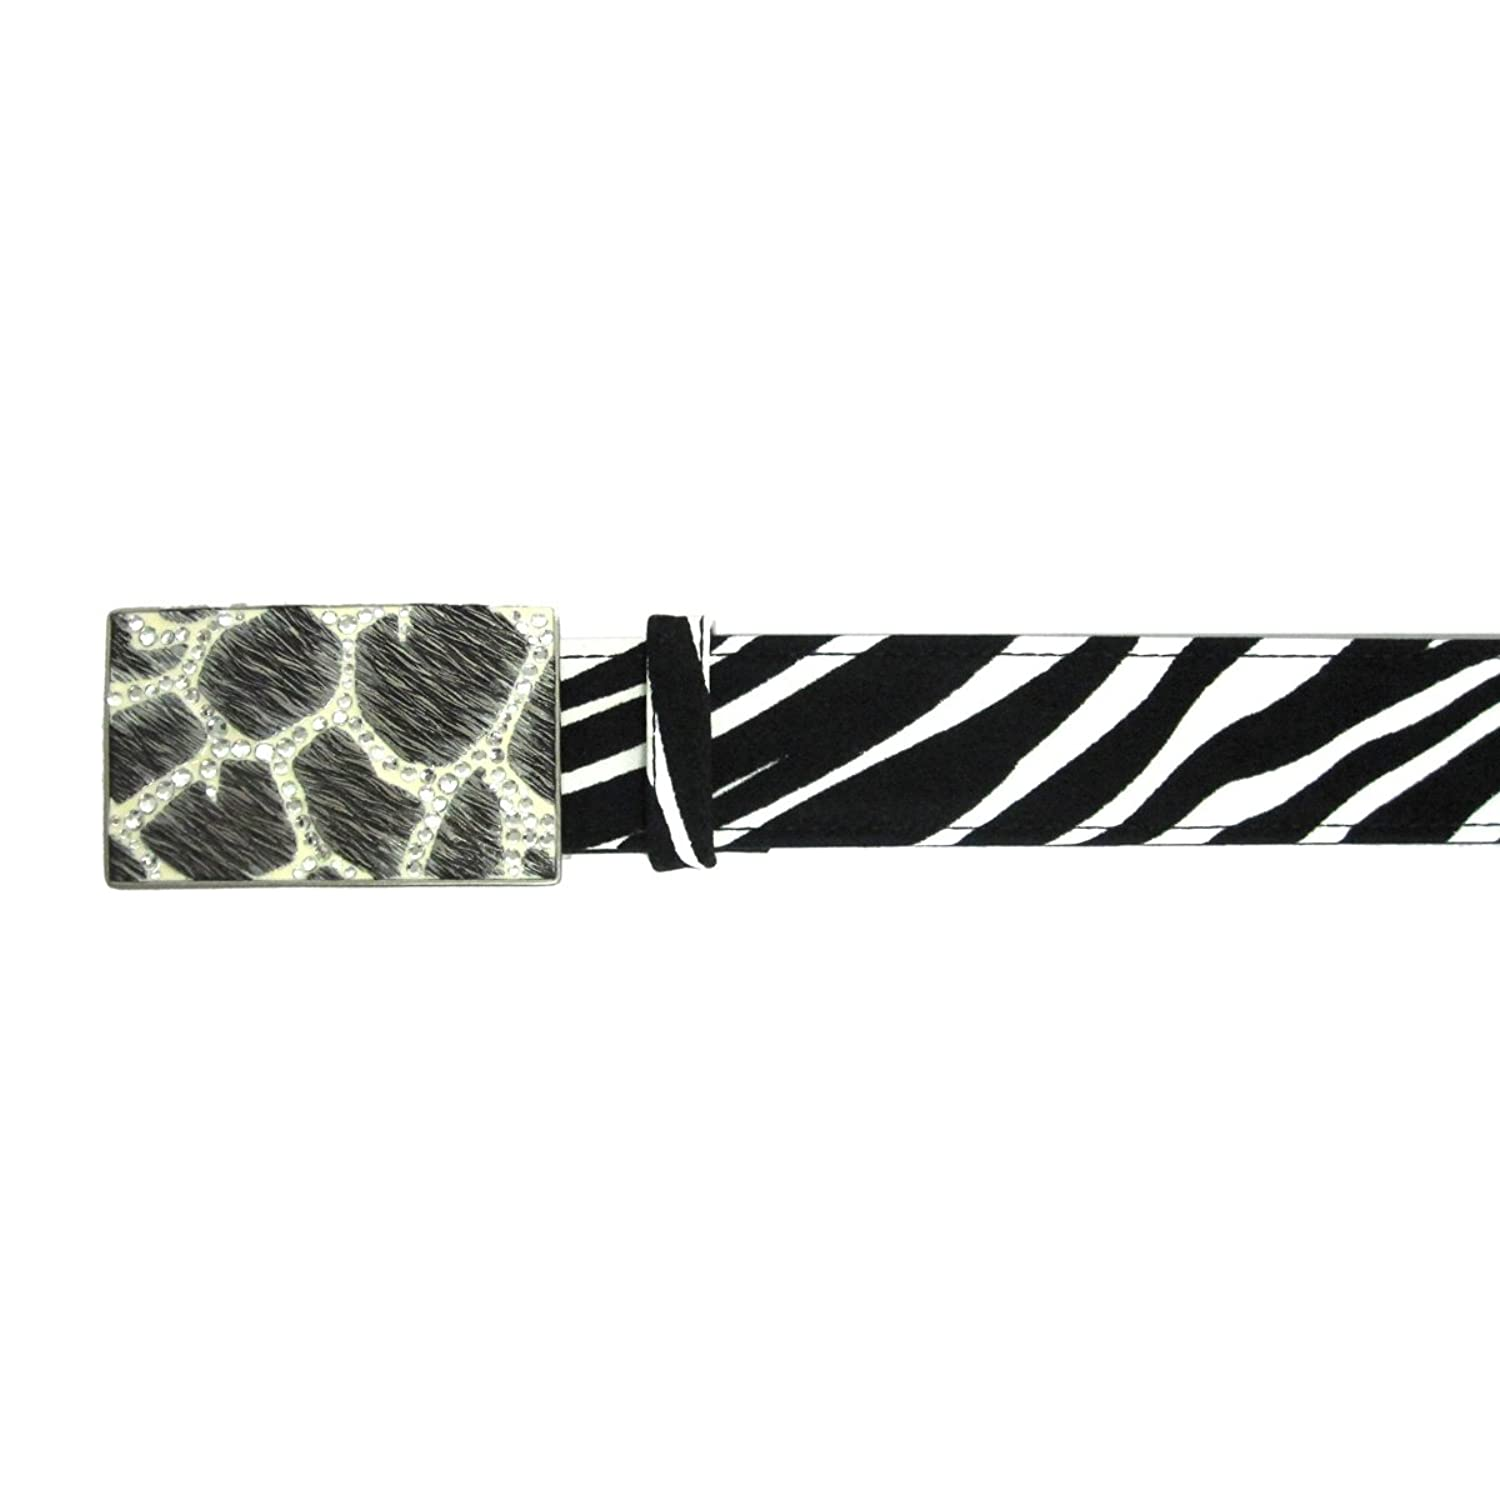 "1 1/2"" Women's Giraffe Print Buckle with Rhinestones on Quality Zebra Print Belt"